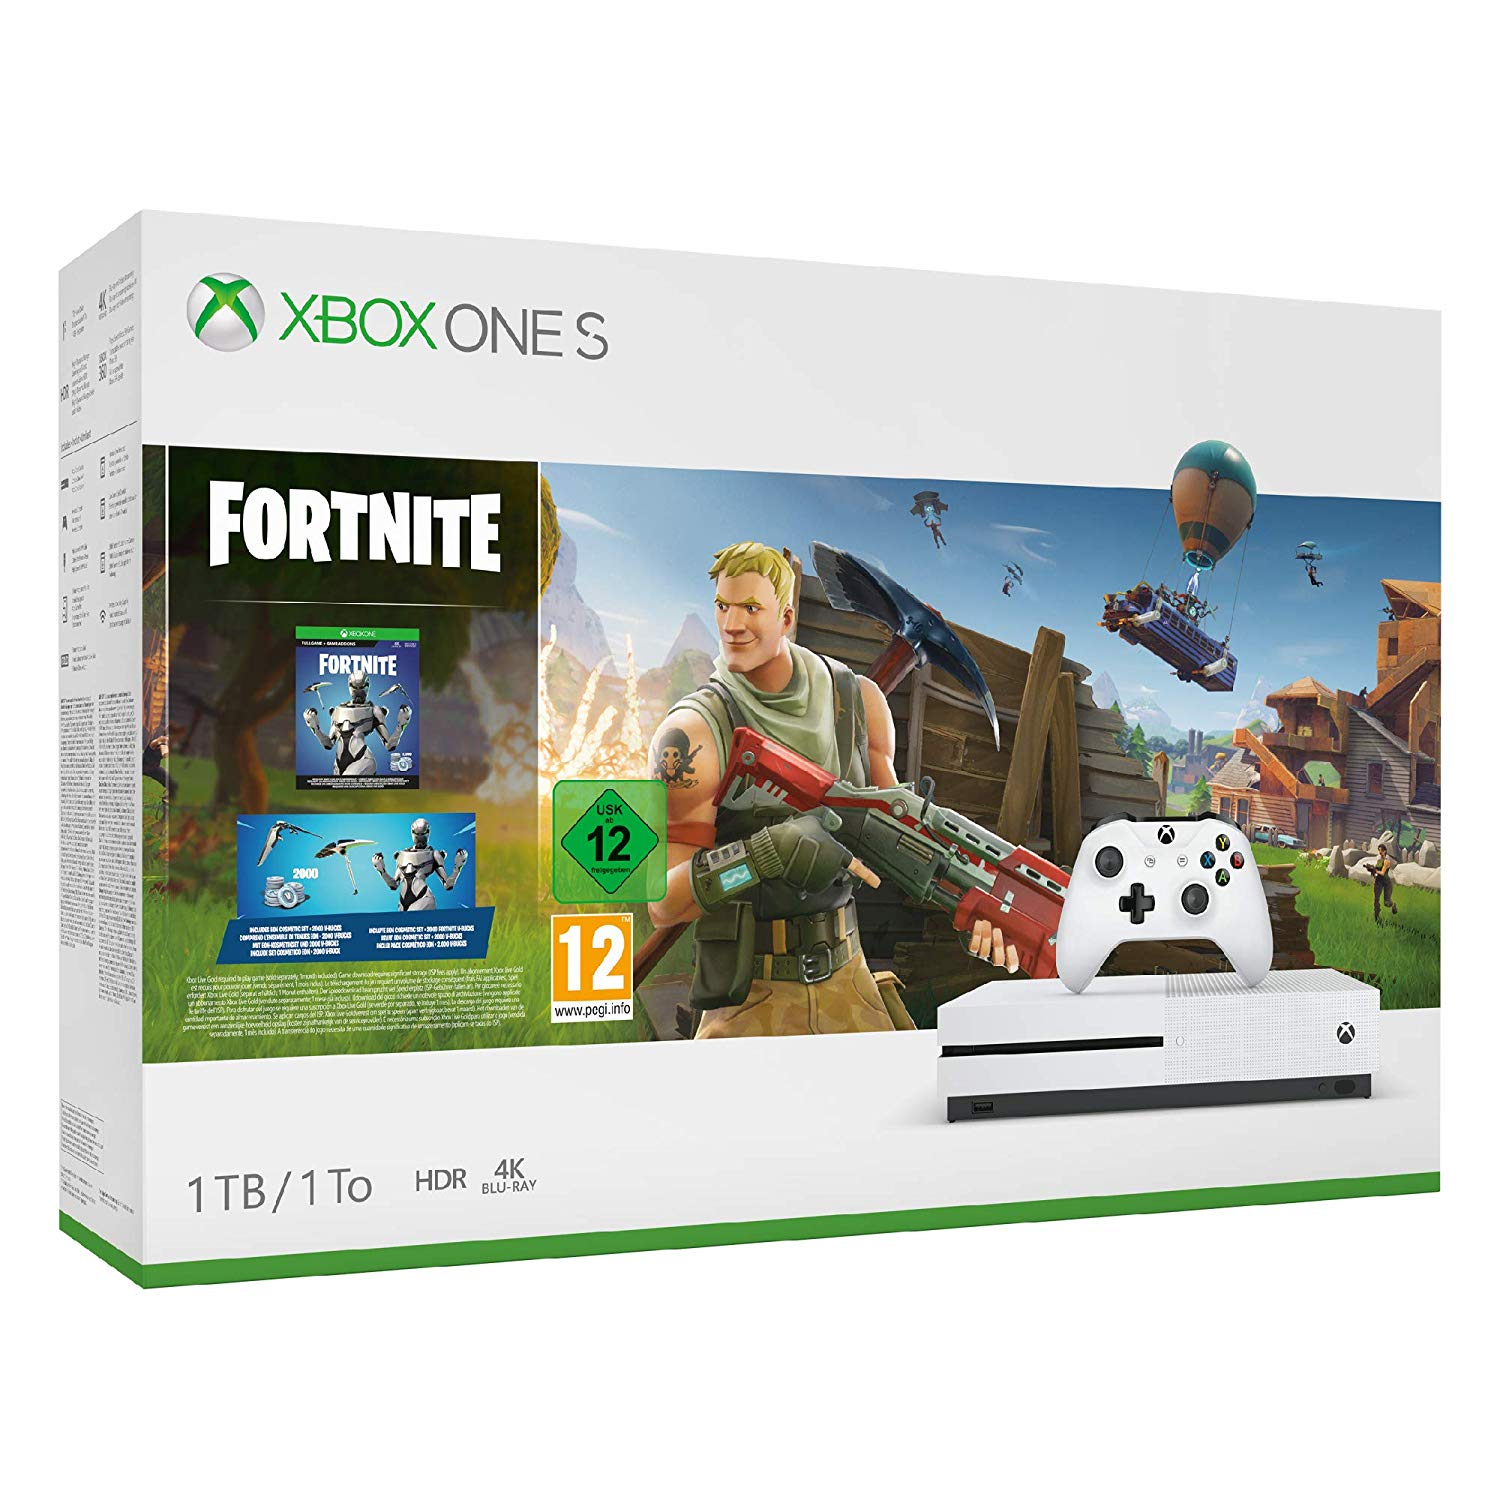 Xbox One S Bundle Fortnite amazon